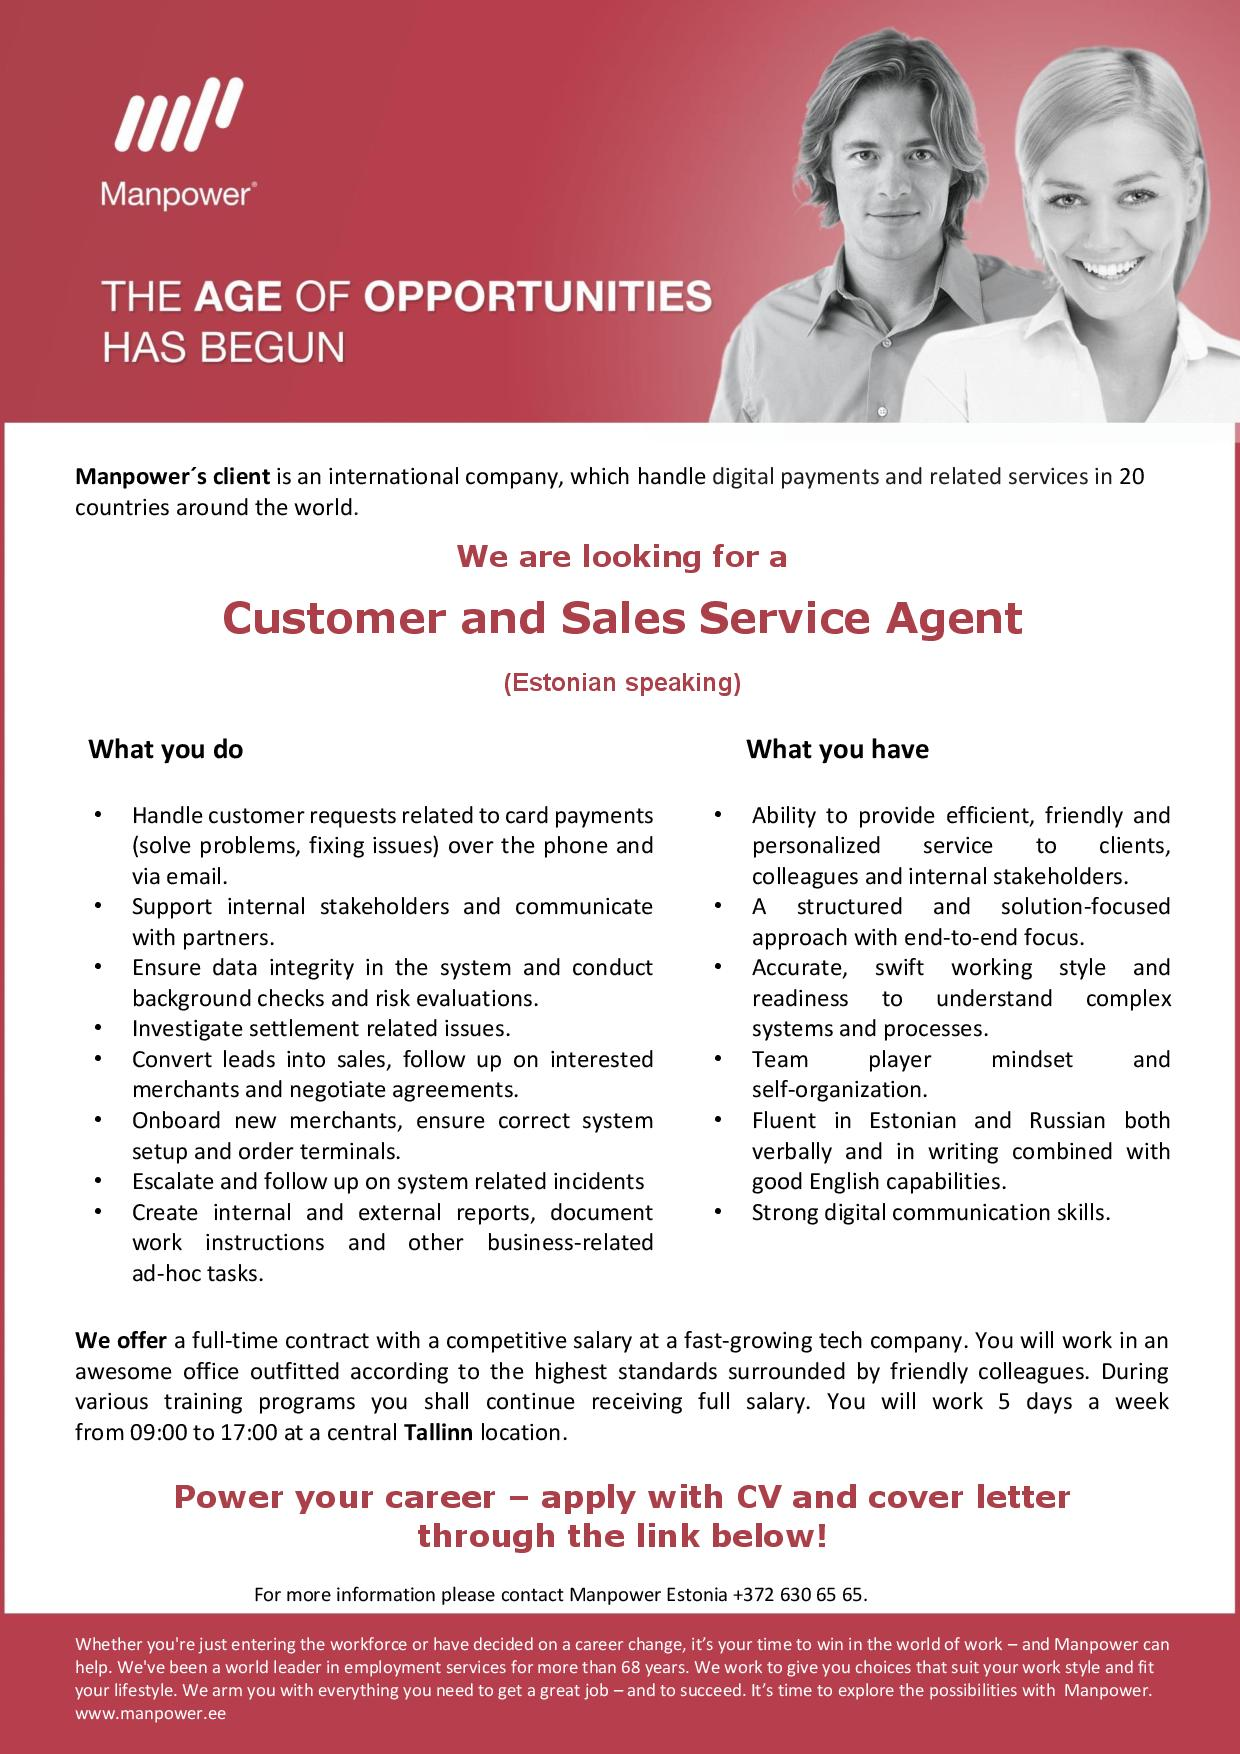 CUSTOMER AND SALES SERVICE AGENT (ESTONIAN SPEAKING)